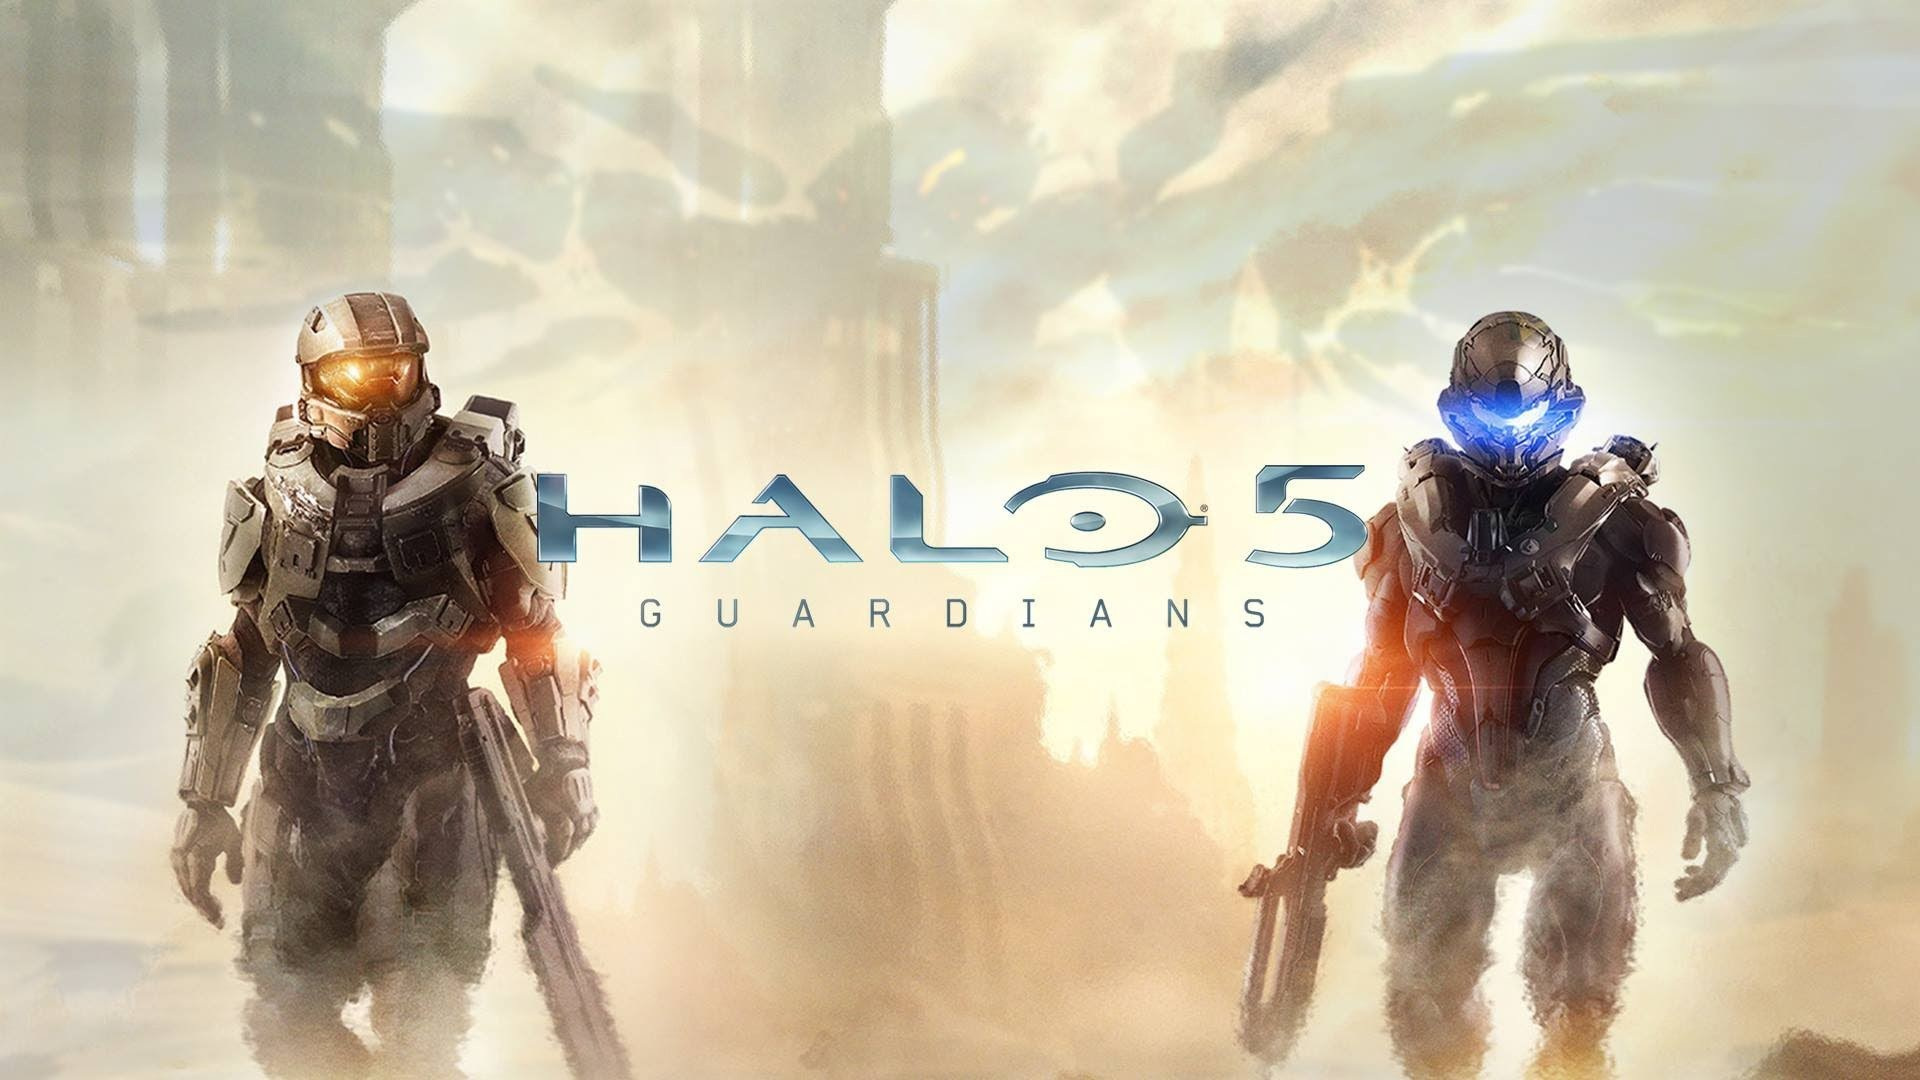 High Quality Halo 5 Guardians Wallpaper   Full HD Photos